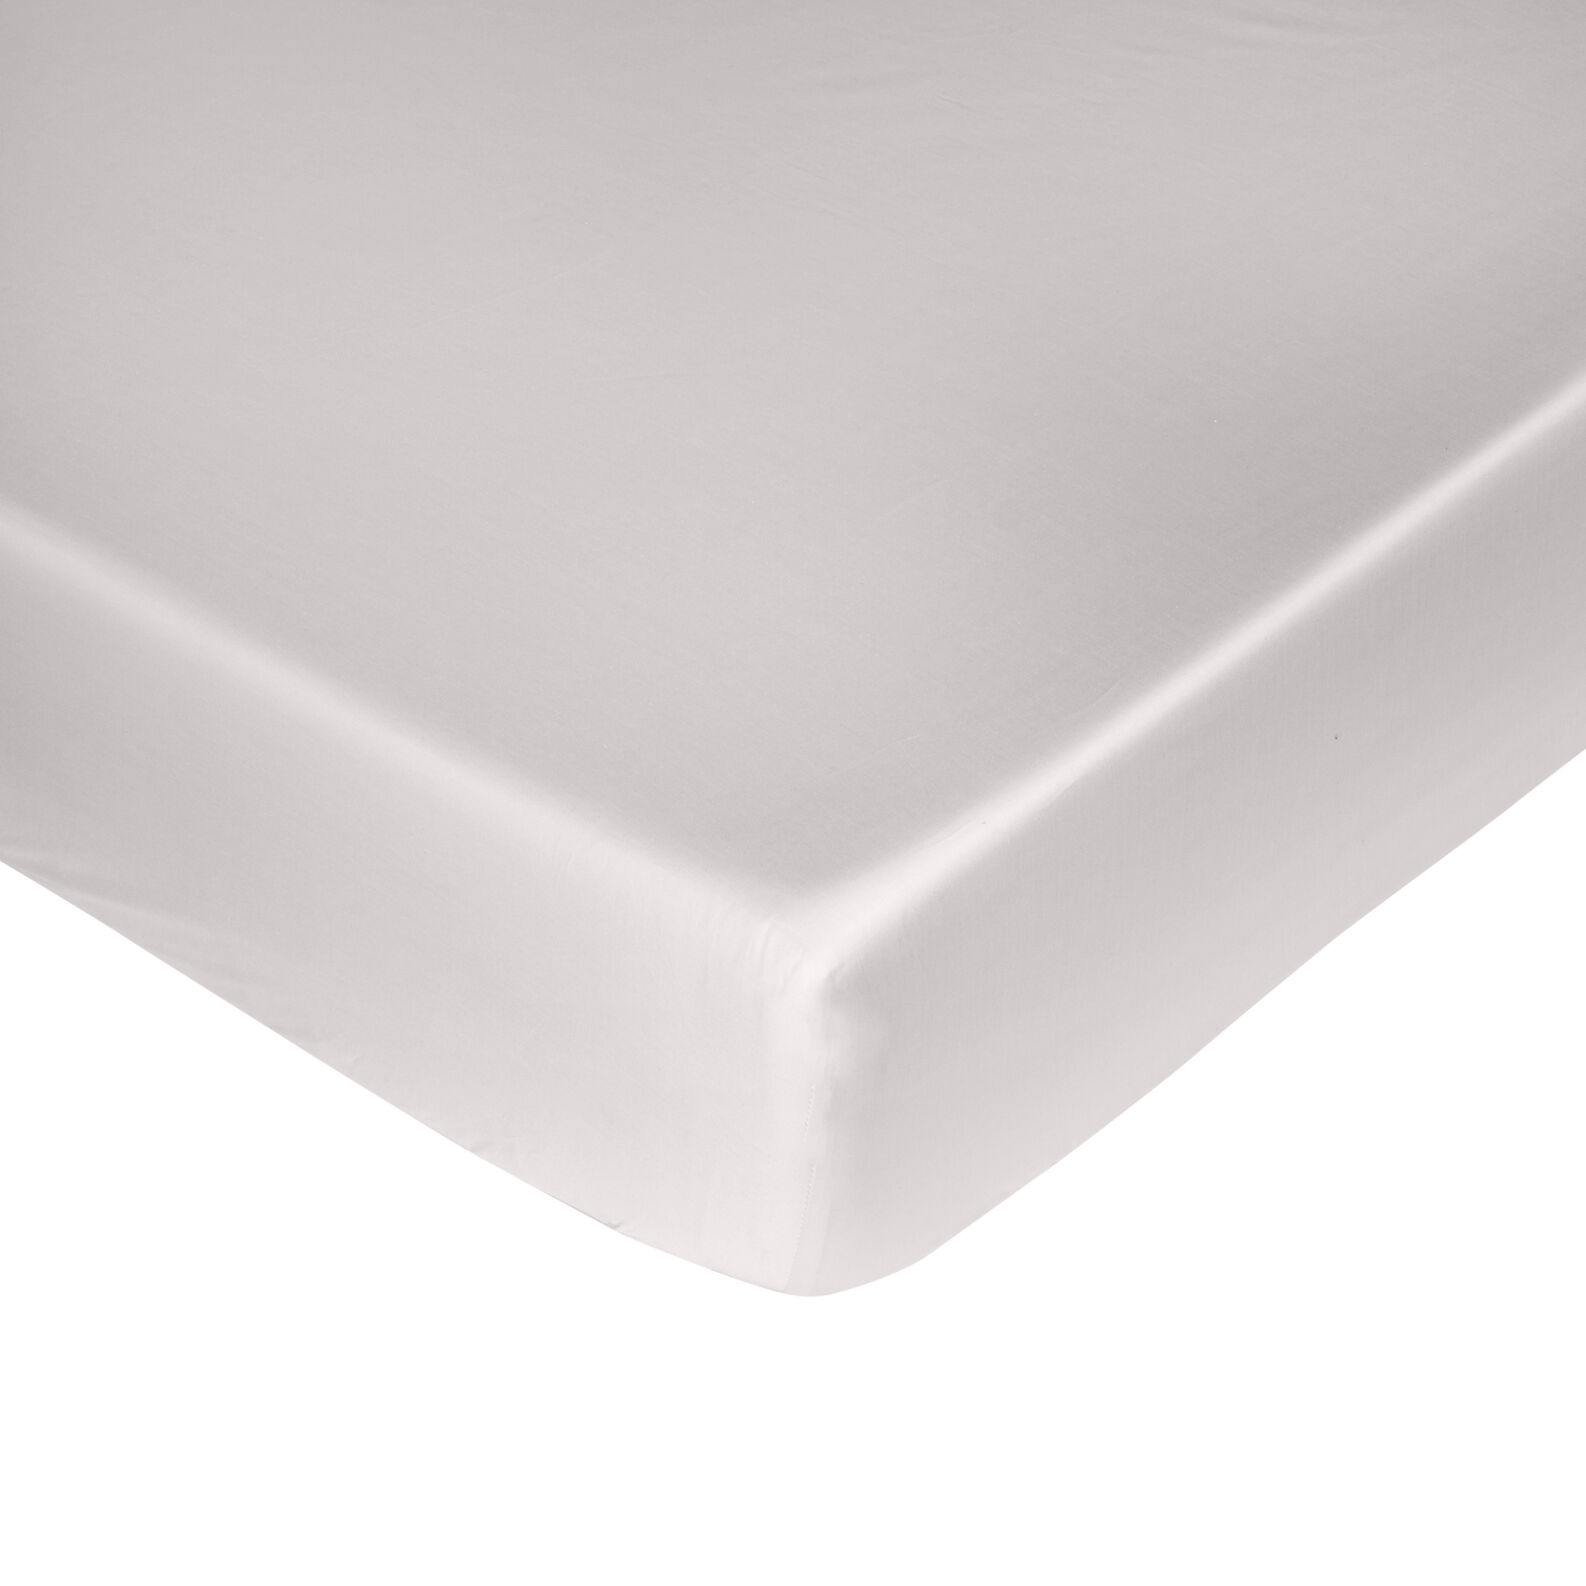 Thermae flat sheet in TC400 satin cotton